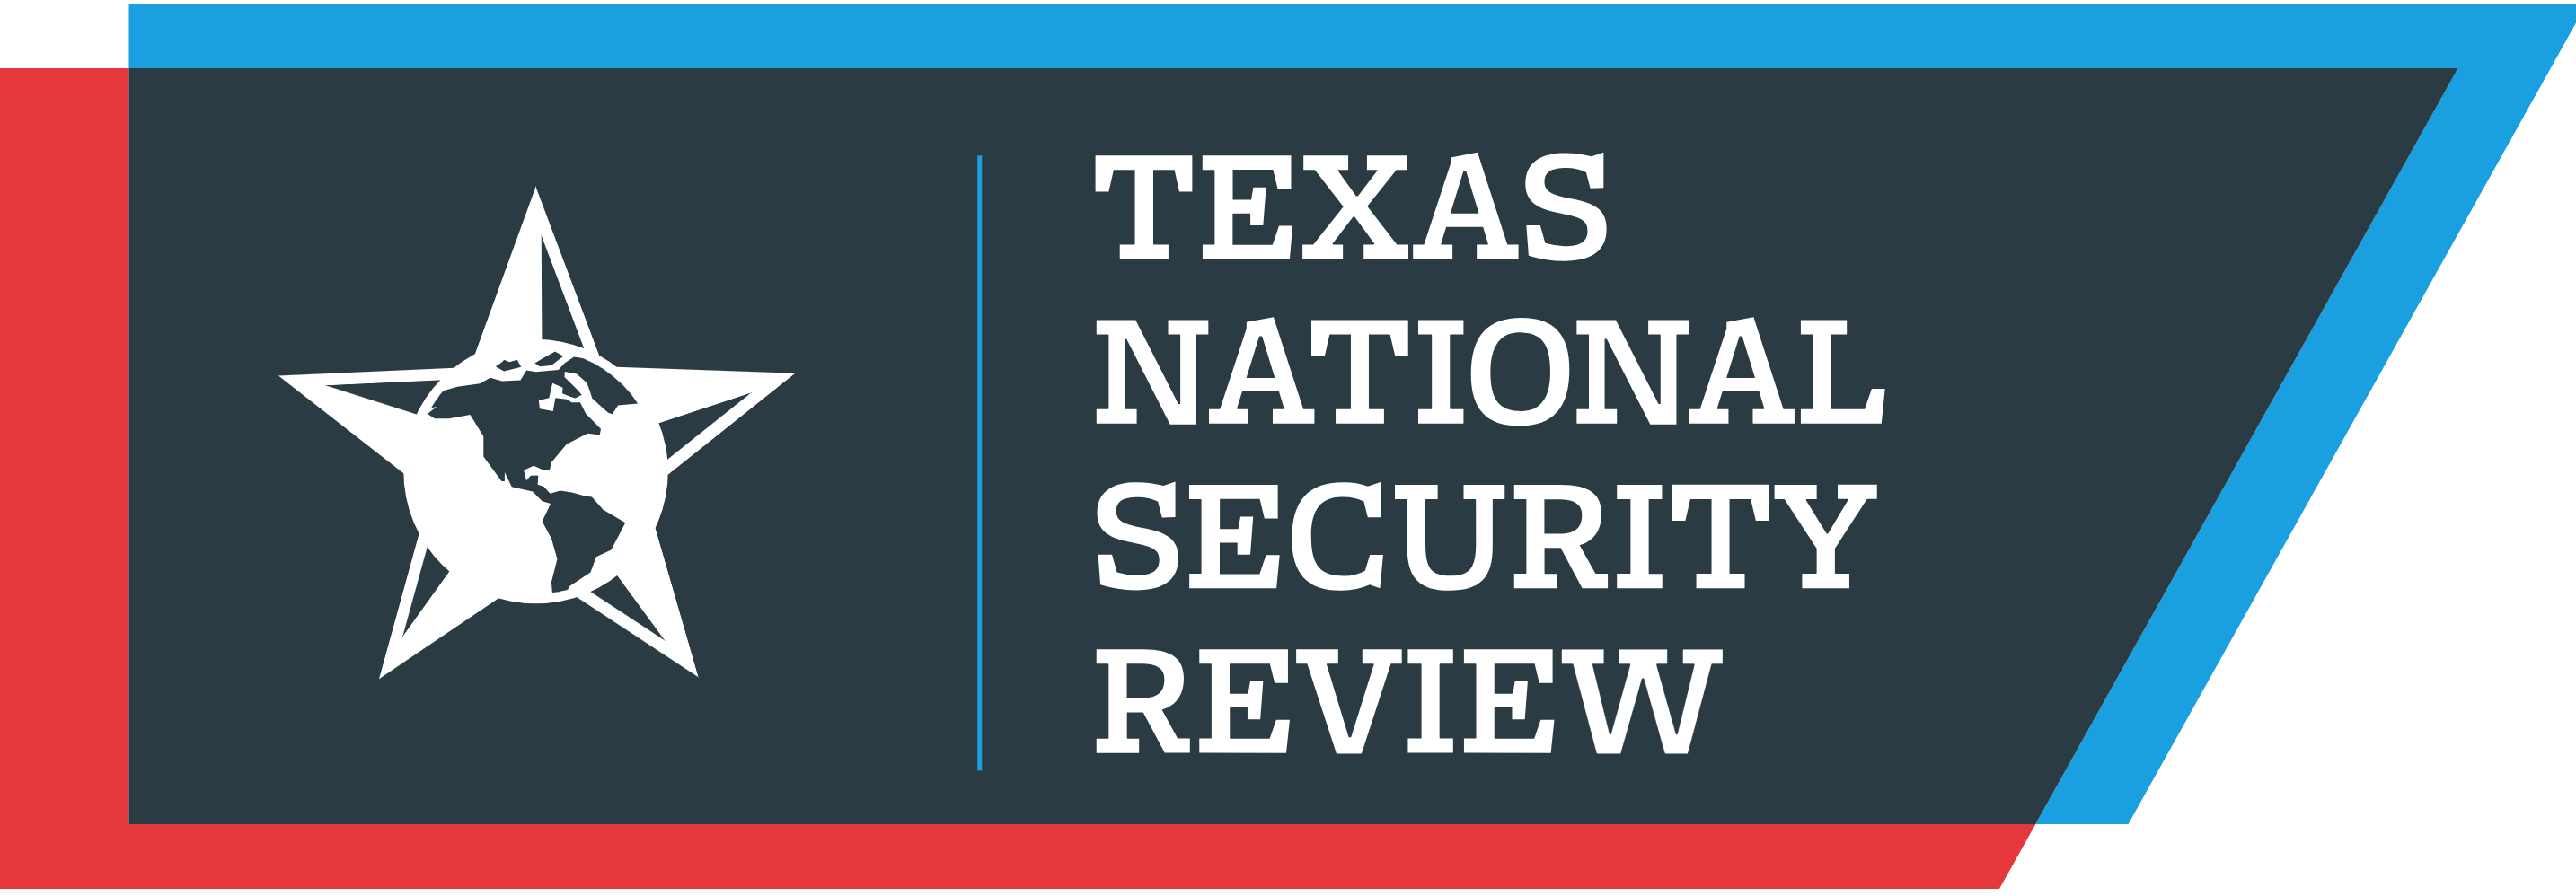 Texas National Security Review